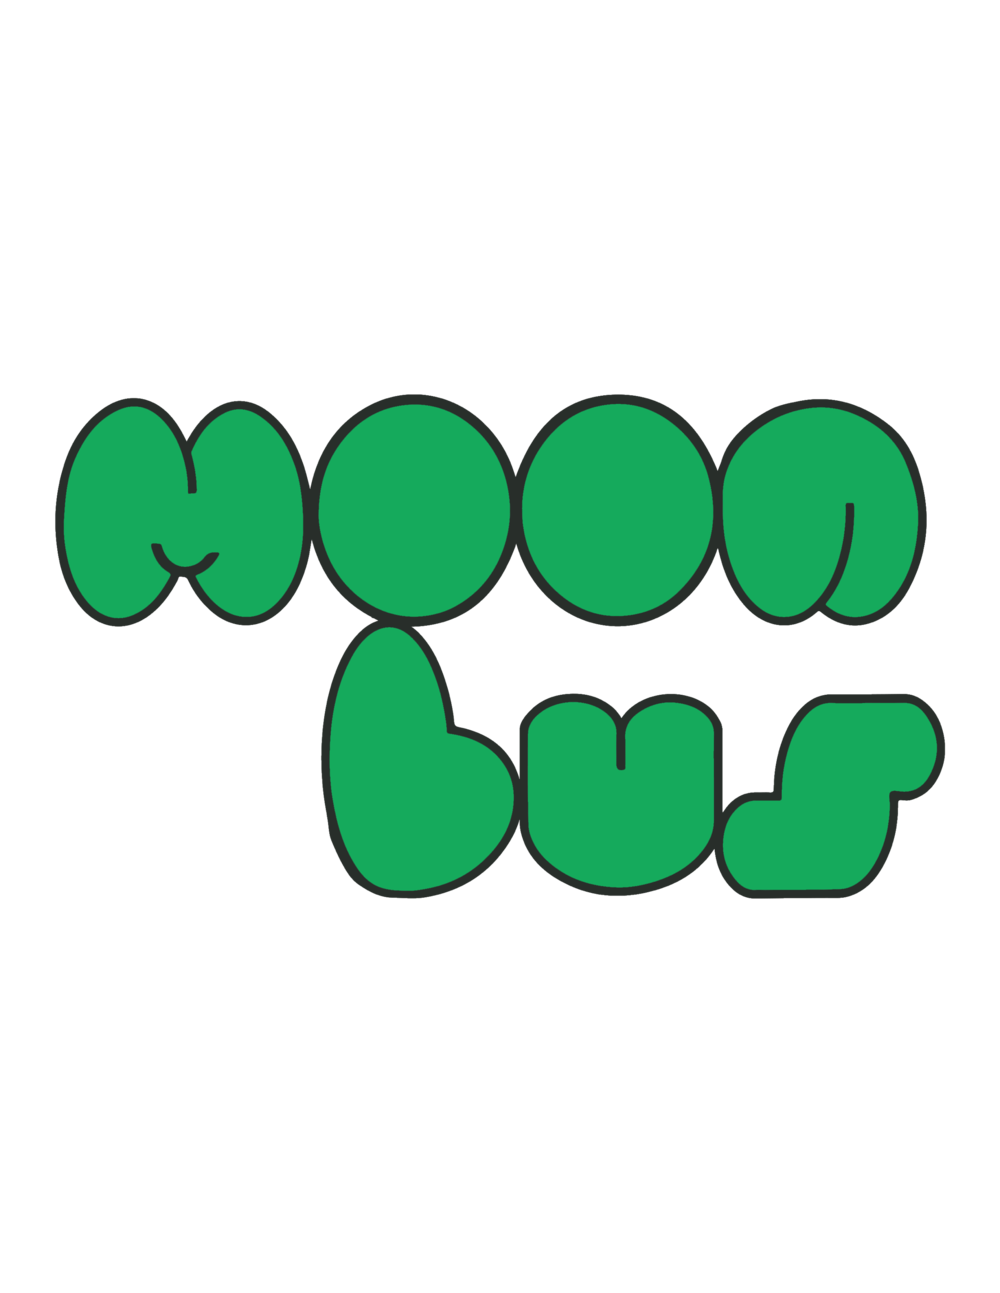 Moon Bus Records